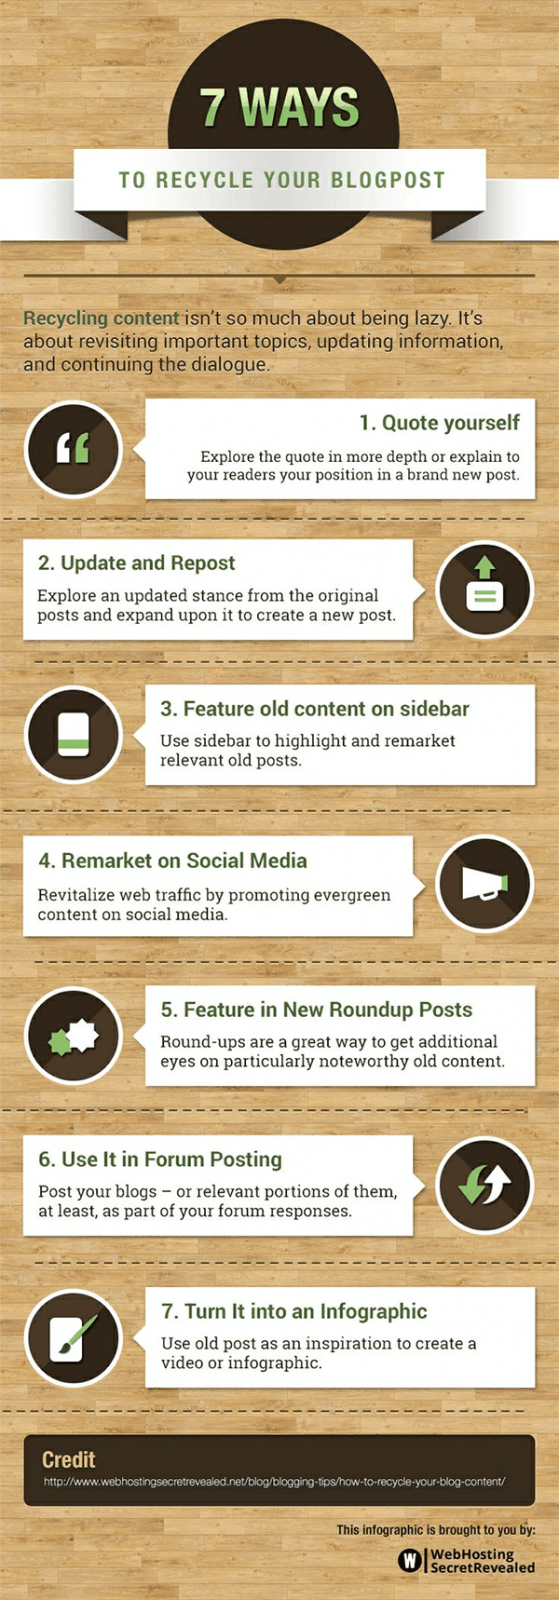 7 Ways to Recycle Old Blog Posts - Infographic